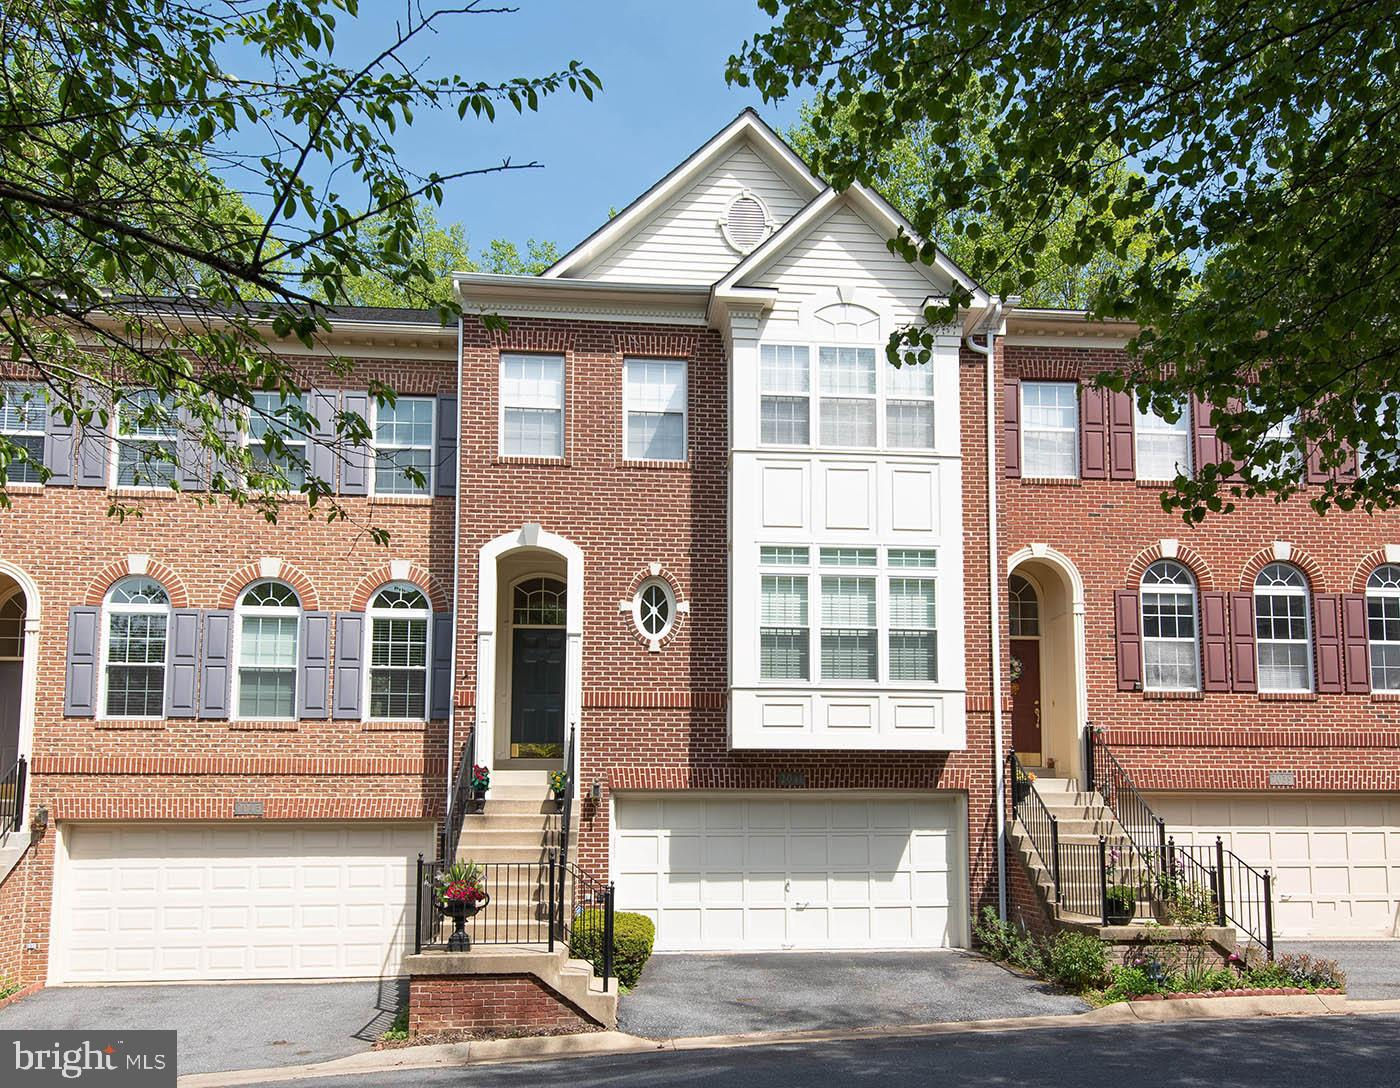 2041 ASHLEIGH WOODS COURT, ROCKVILLE, Maryland 20851, 3 Bedrooms Bedrooms, ,3 BathroomsBathrooms,Townhouse,For Sale,2041 ASHLEIGH WOODS COURT,MDMC755928